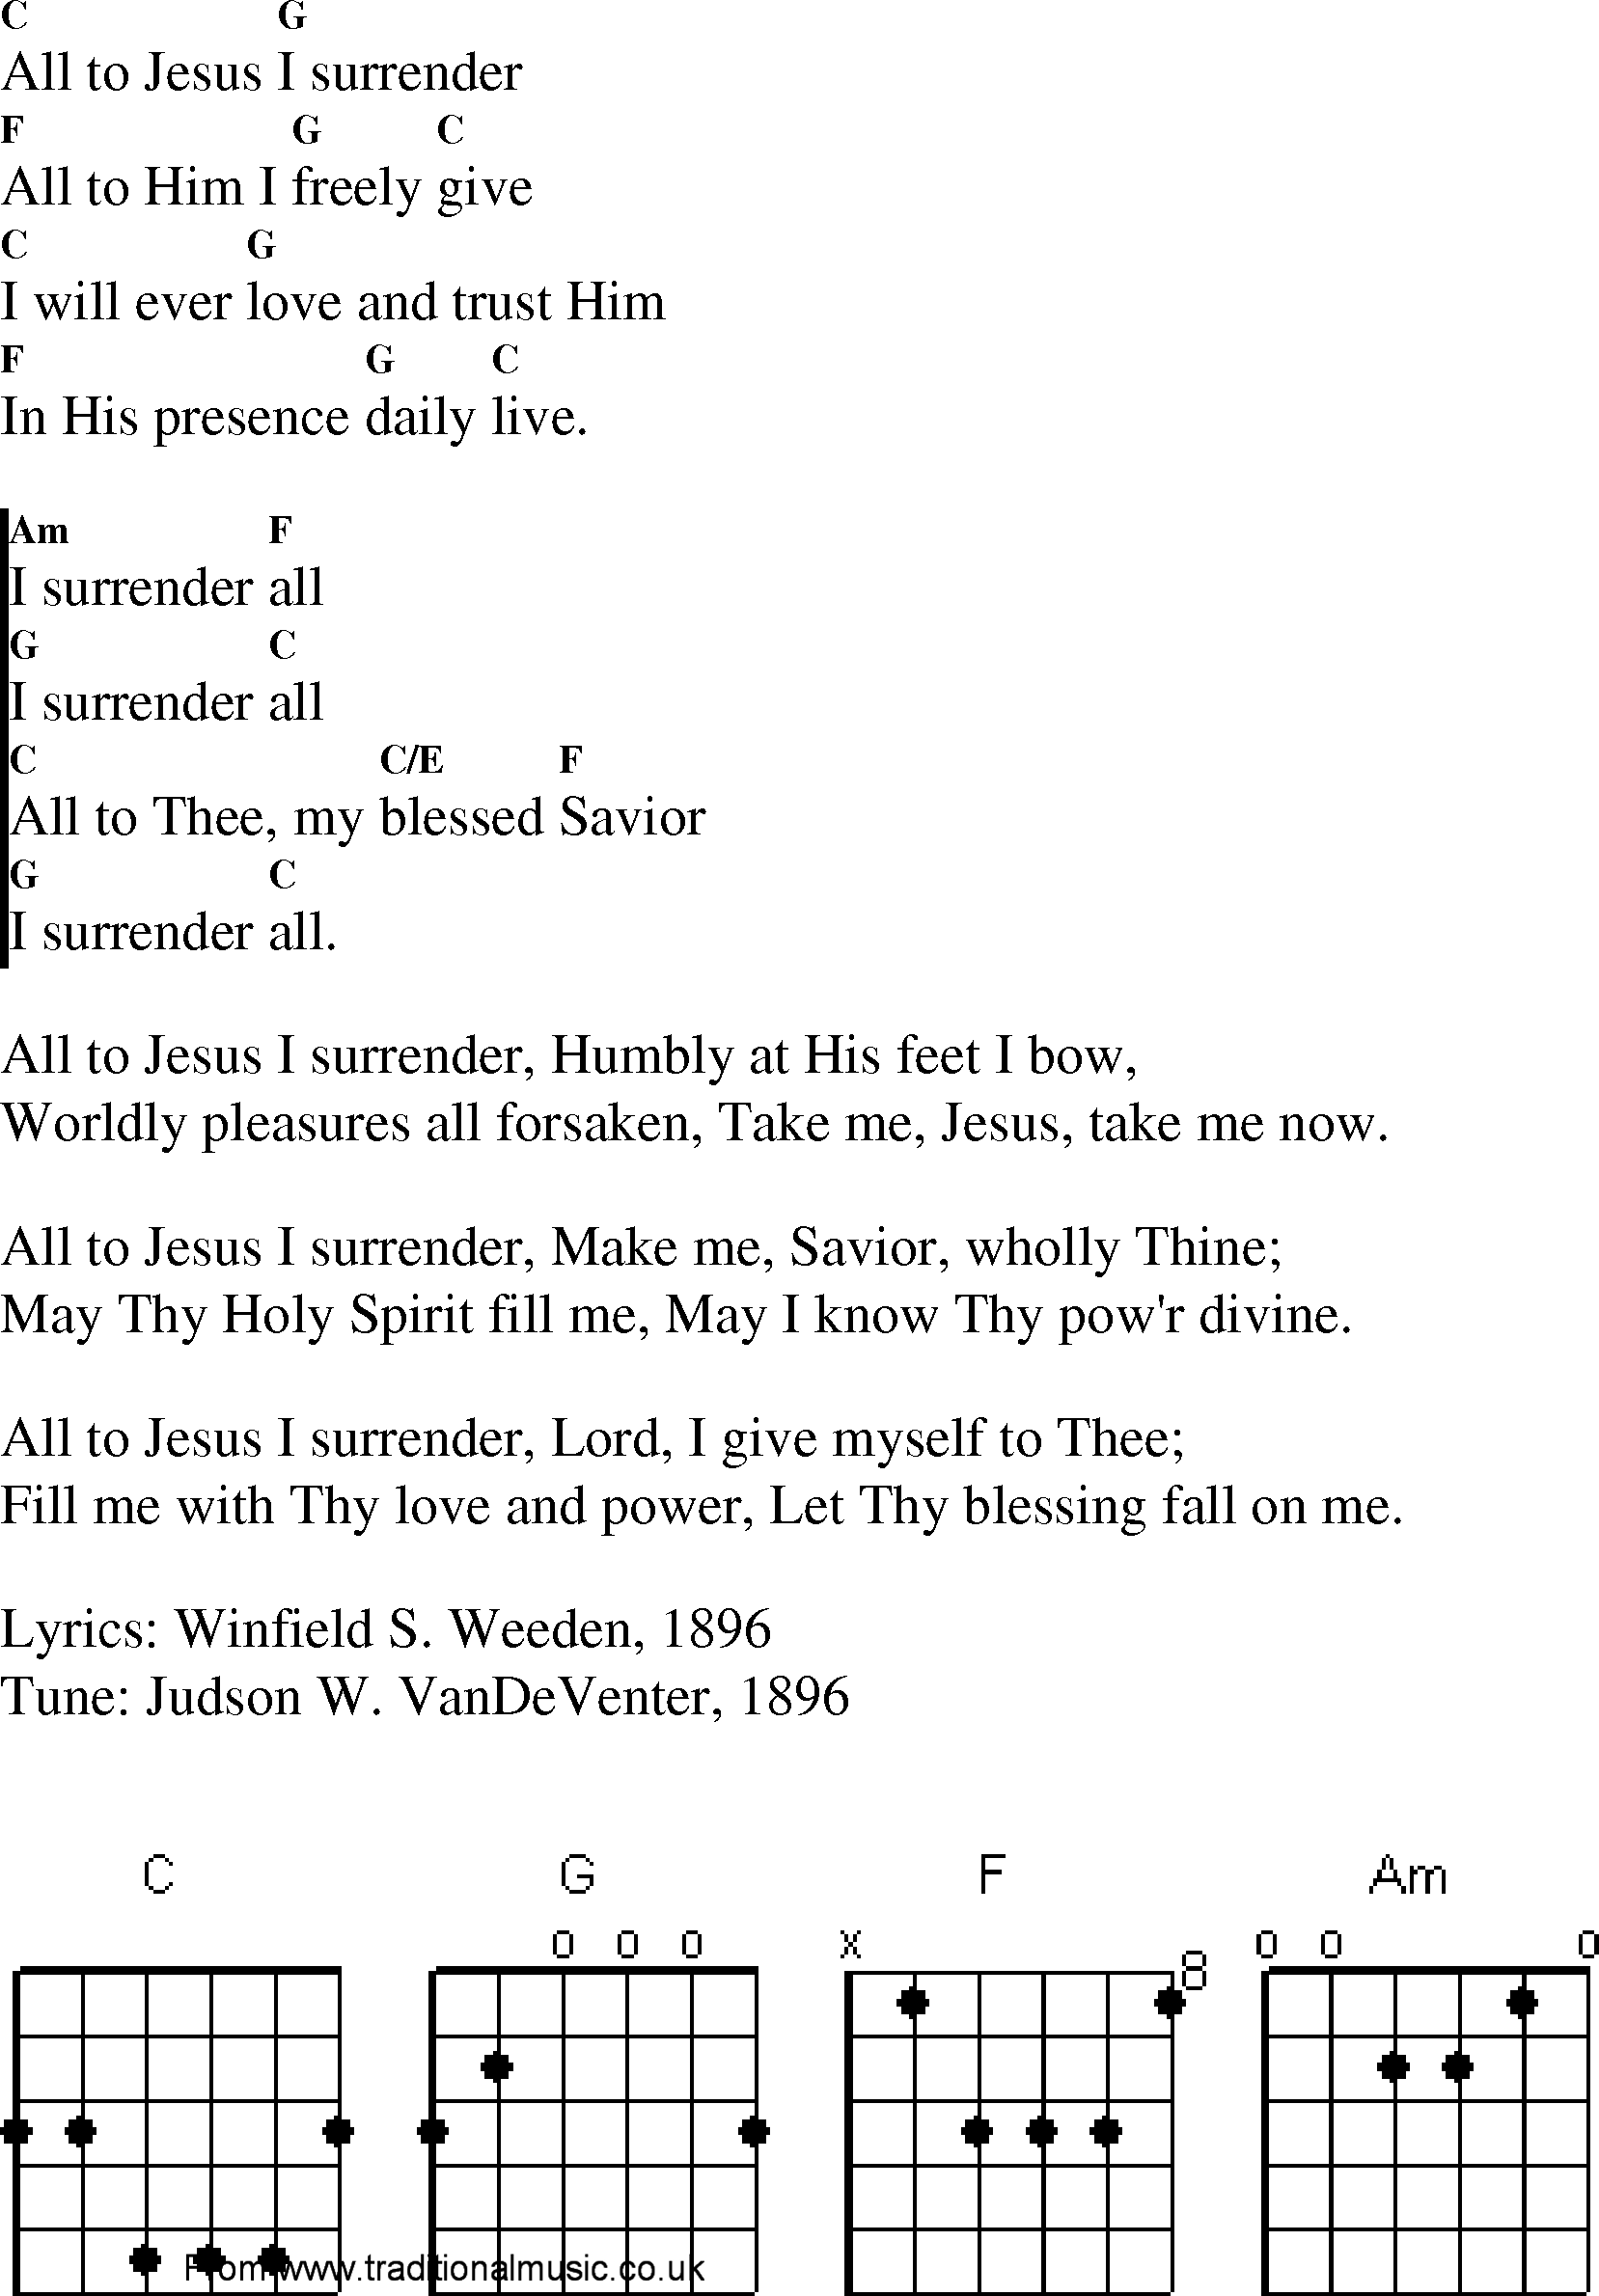 All to Jesus I surrender Lyrics - Christian Lyrics